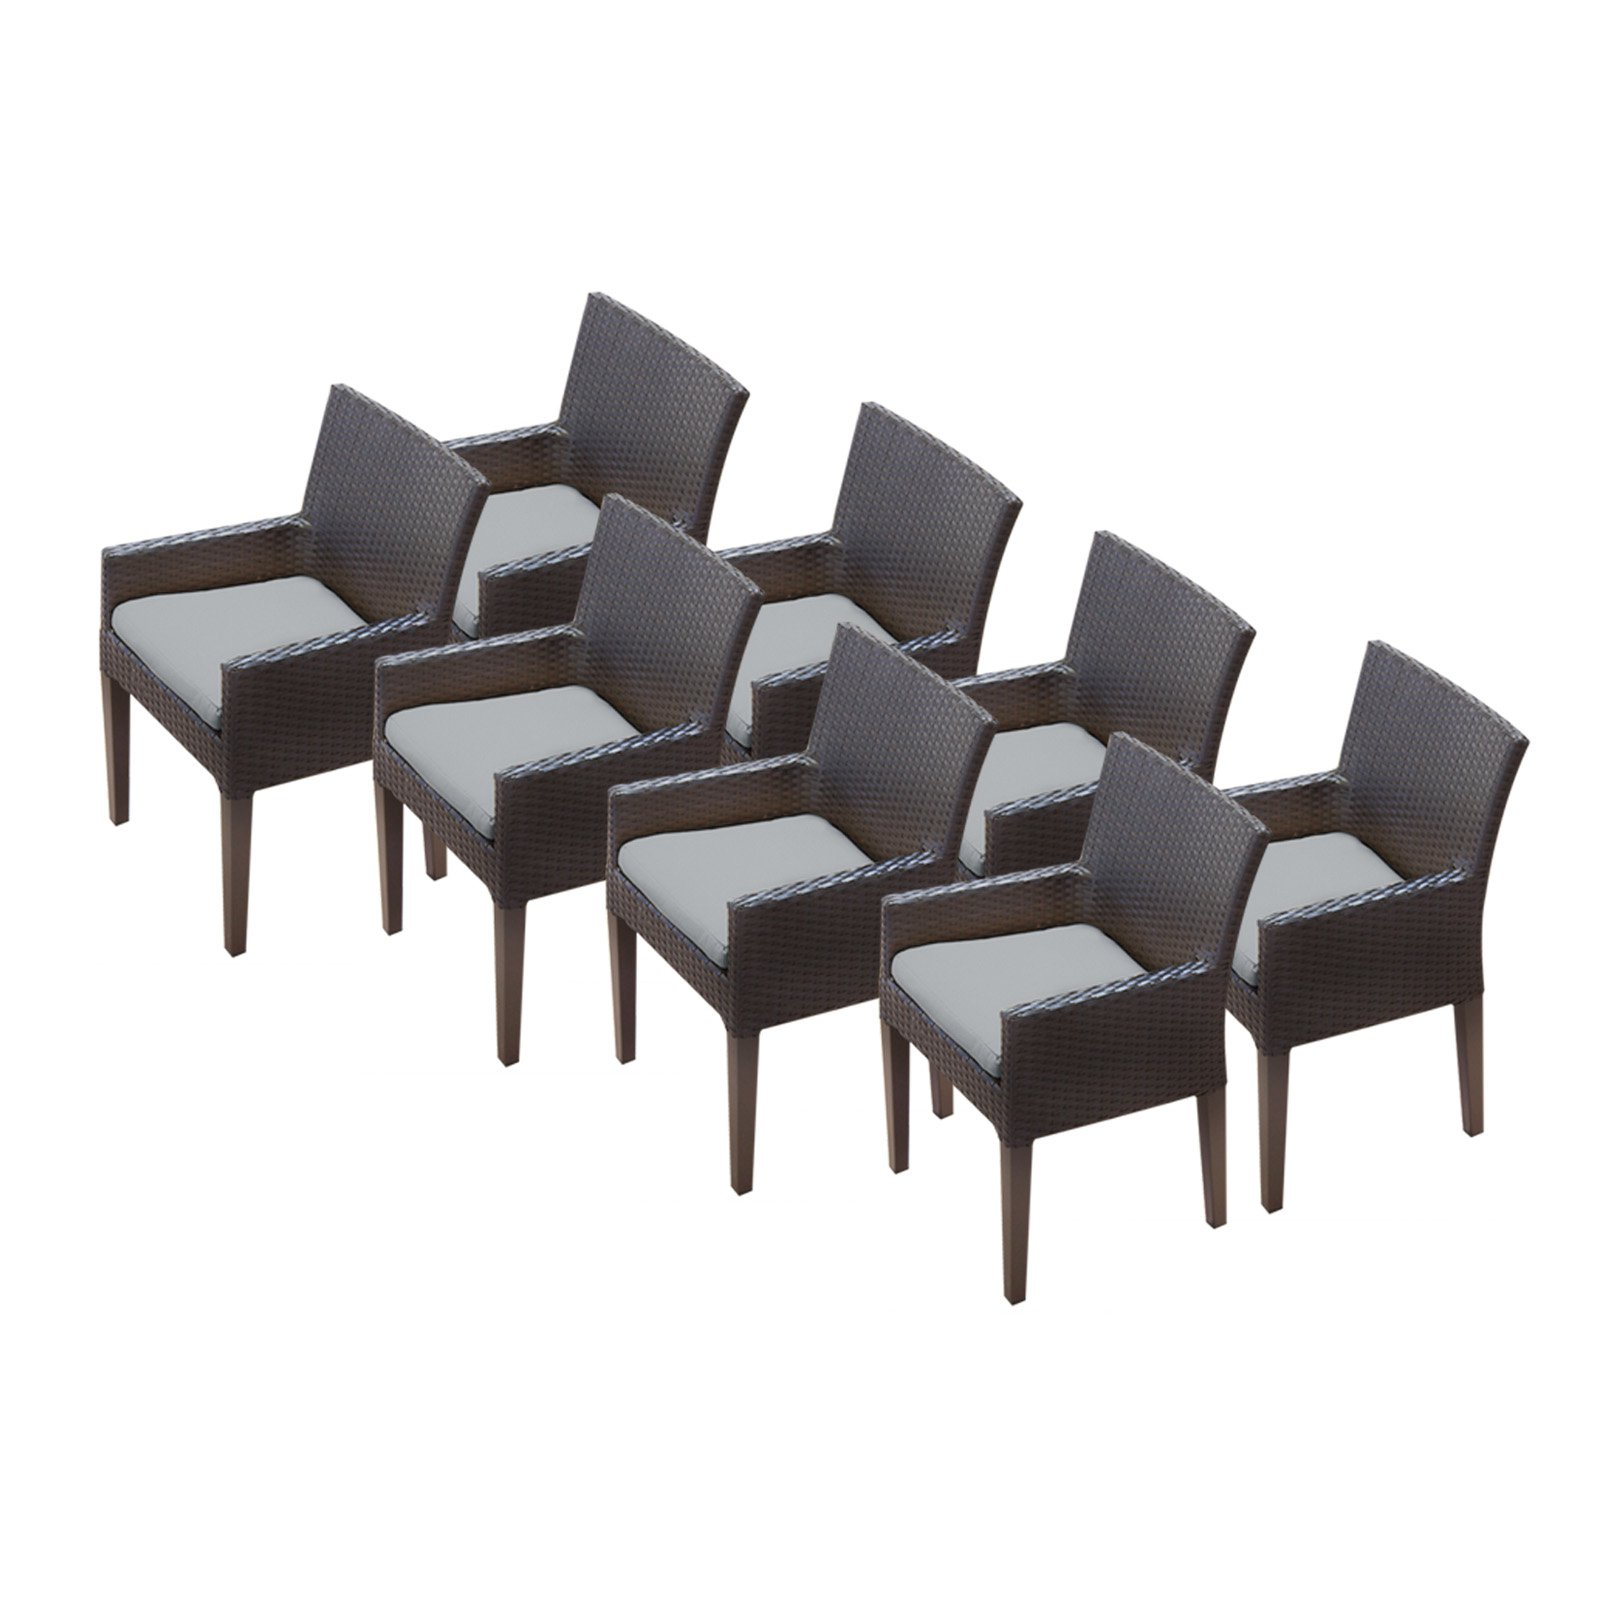 TK Classics Napa Outdoor Dining Chair - Set of 8 with 16 Cushion Covers